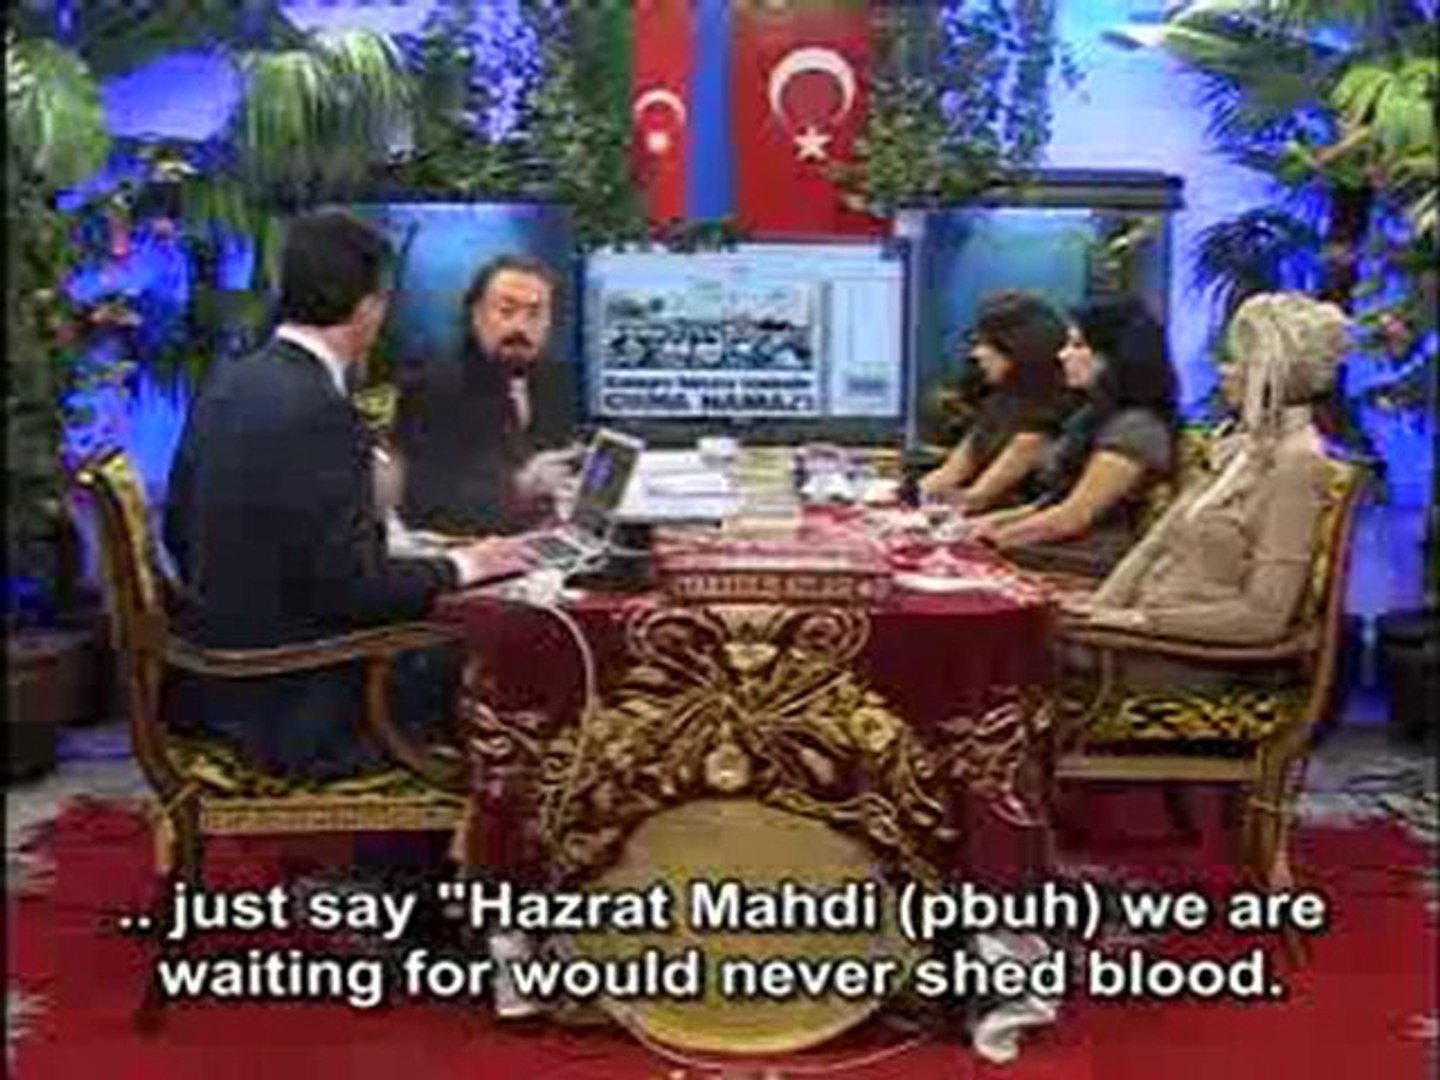 Muslims should explain the fact that Hazrat Mahdi (pbuh) will not spill blood thoroughly to the whol